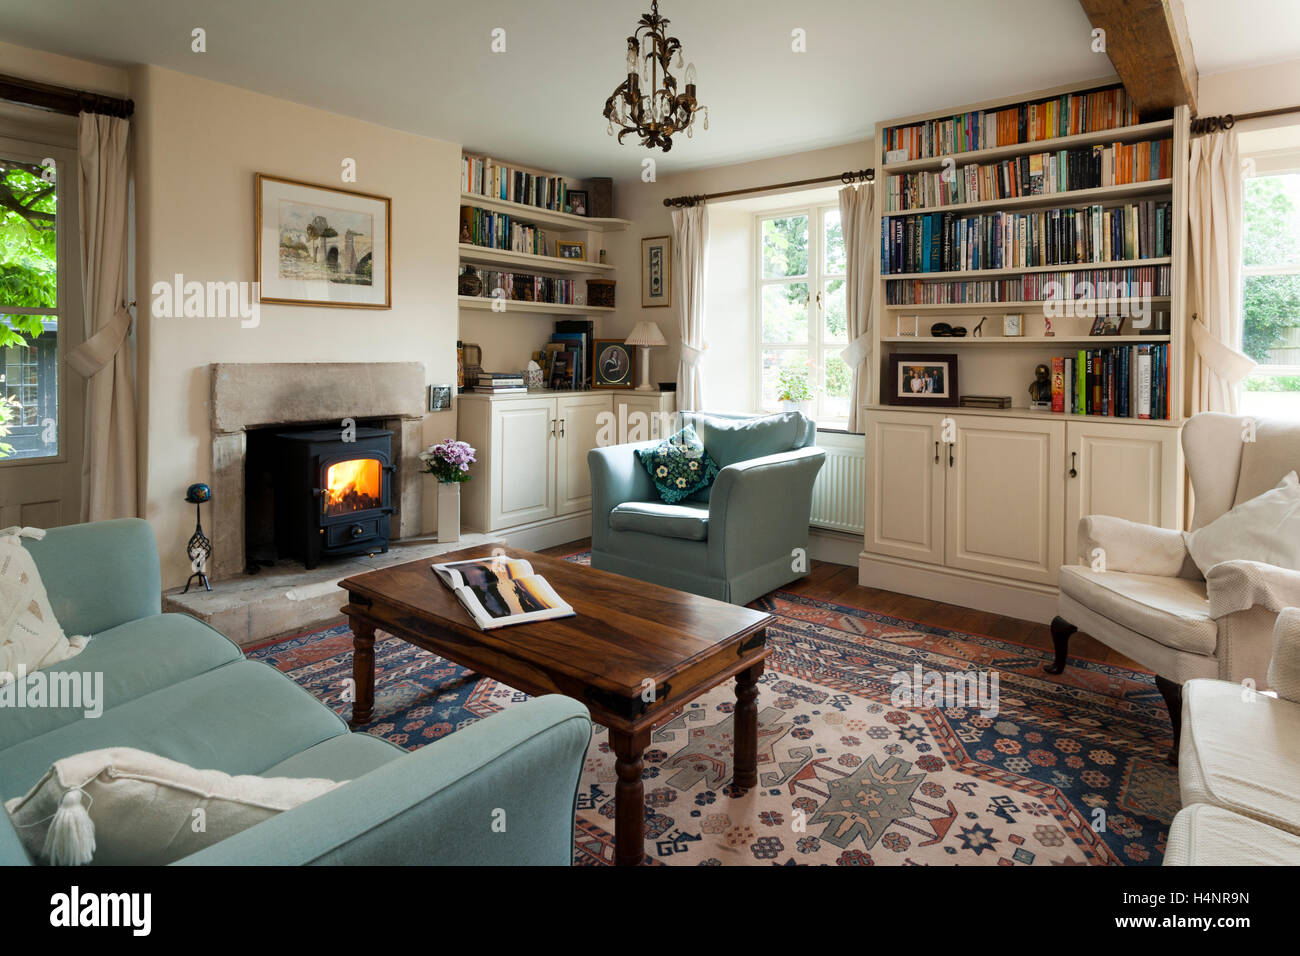 A traditionally furnished living room Stock Photo